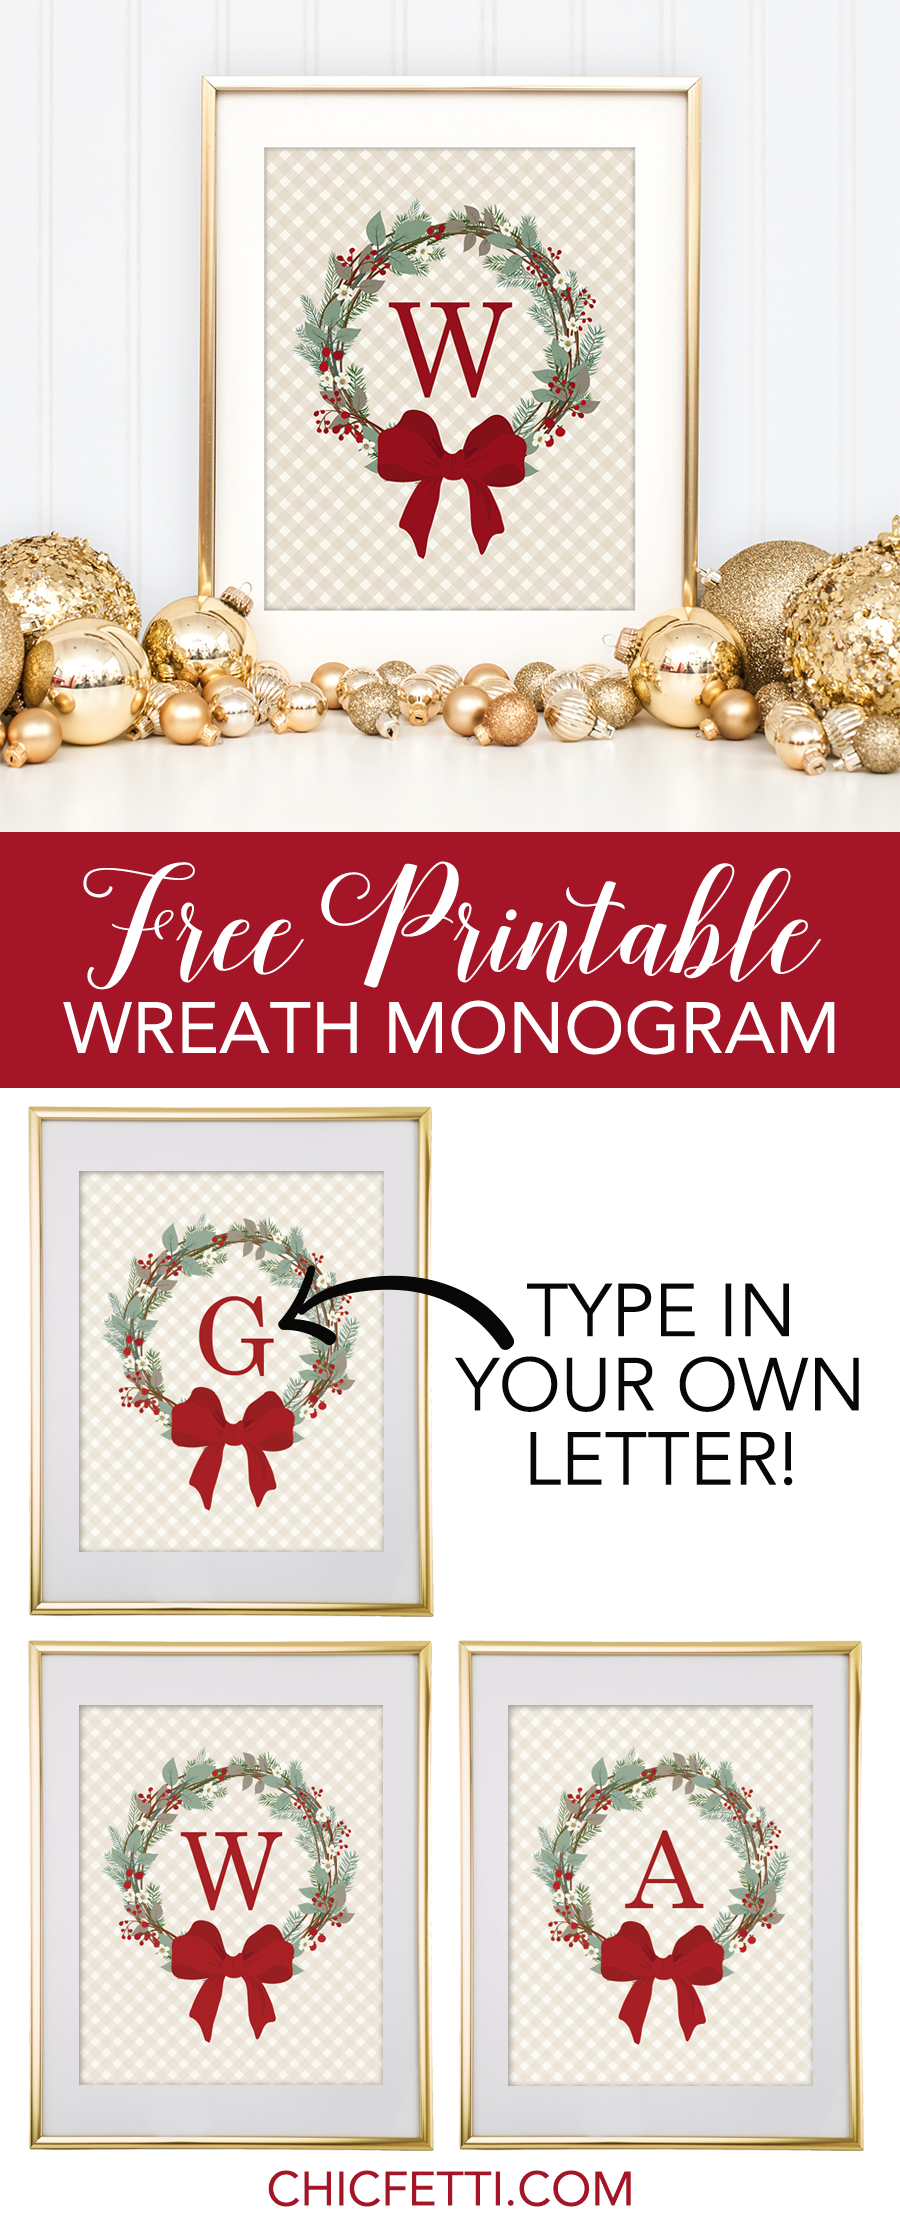 image about Printable Monogram Maker identify totally free-printable-monogram-producer-xmas-weath - DIYbunker